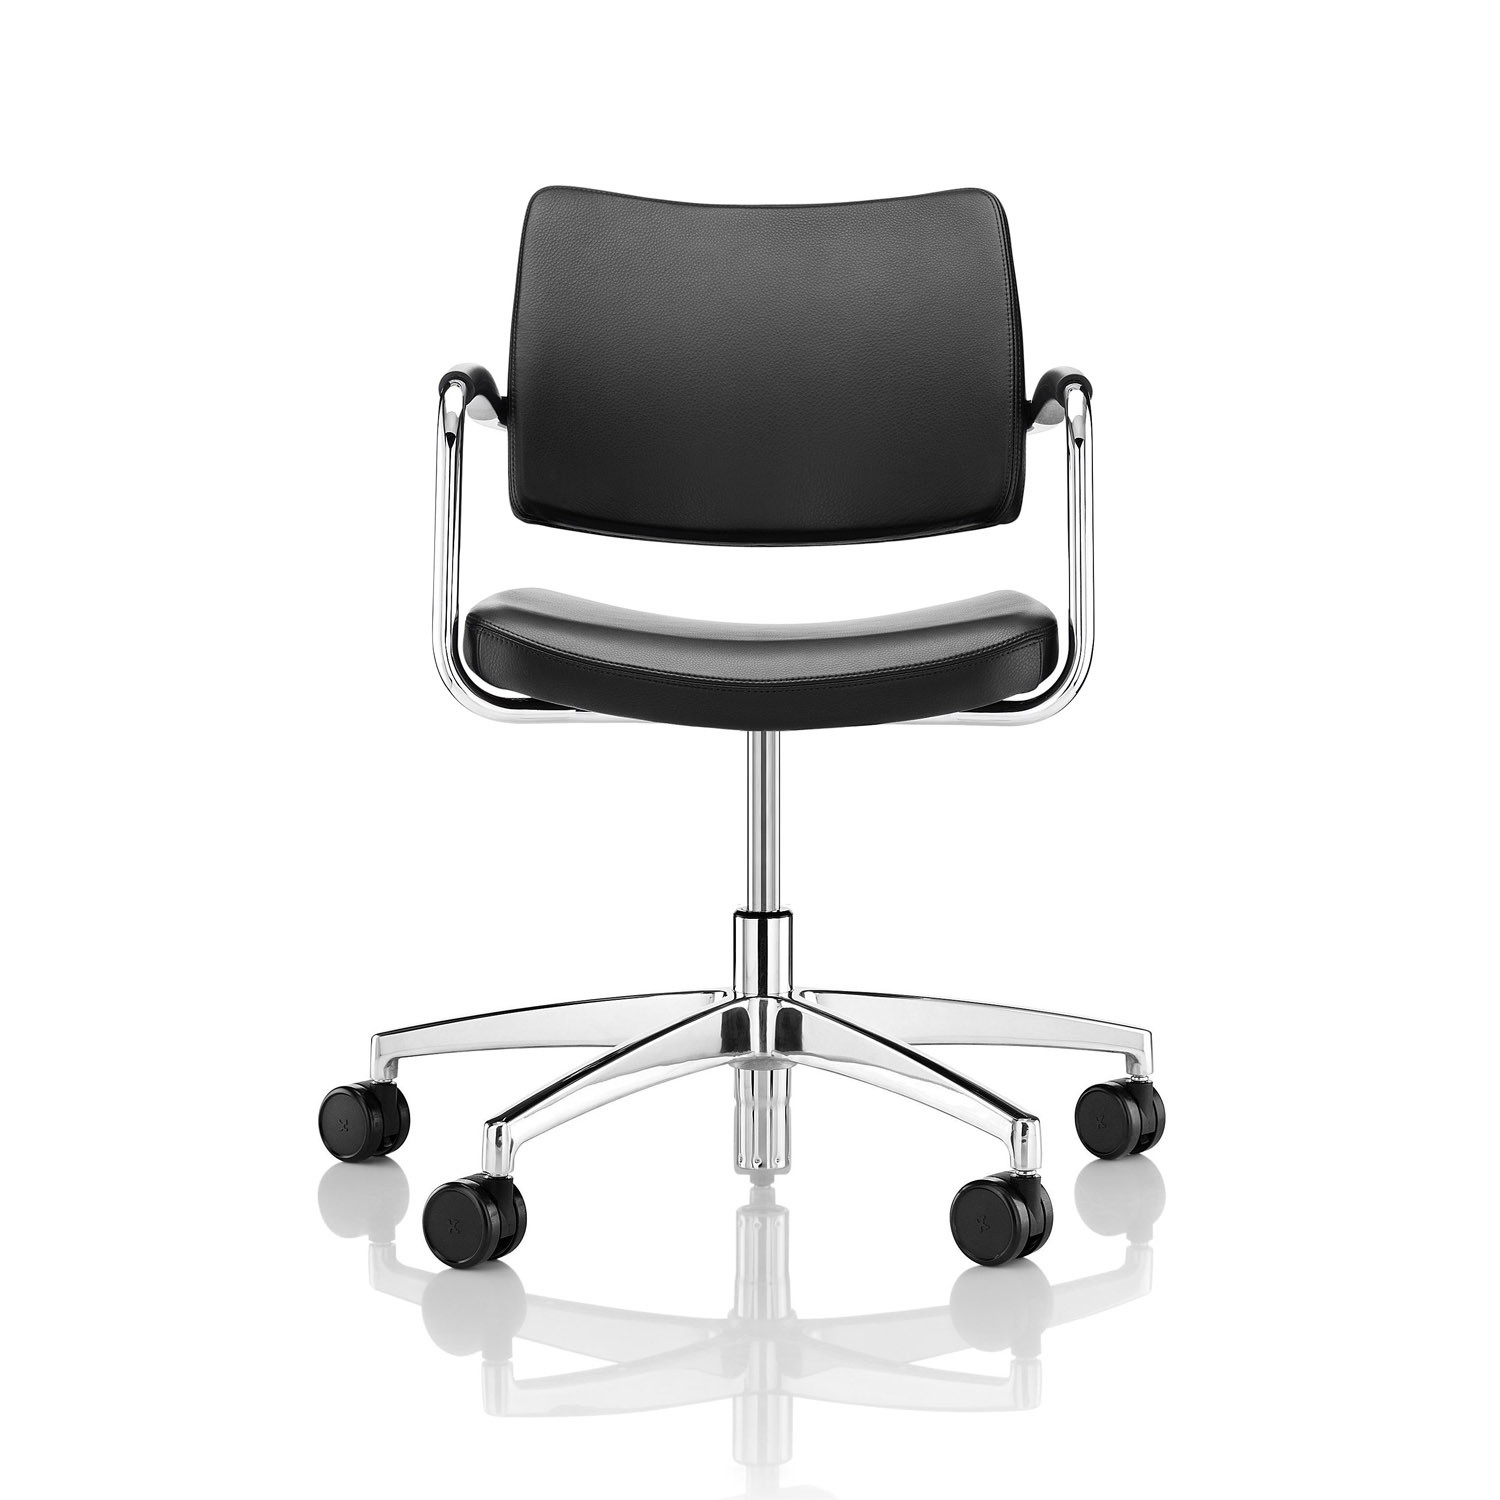 Pro Visitor Chair - 4 Star Base